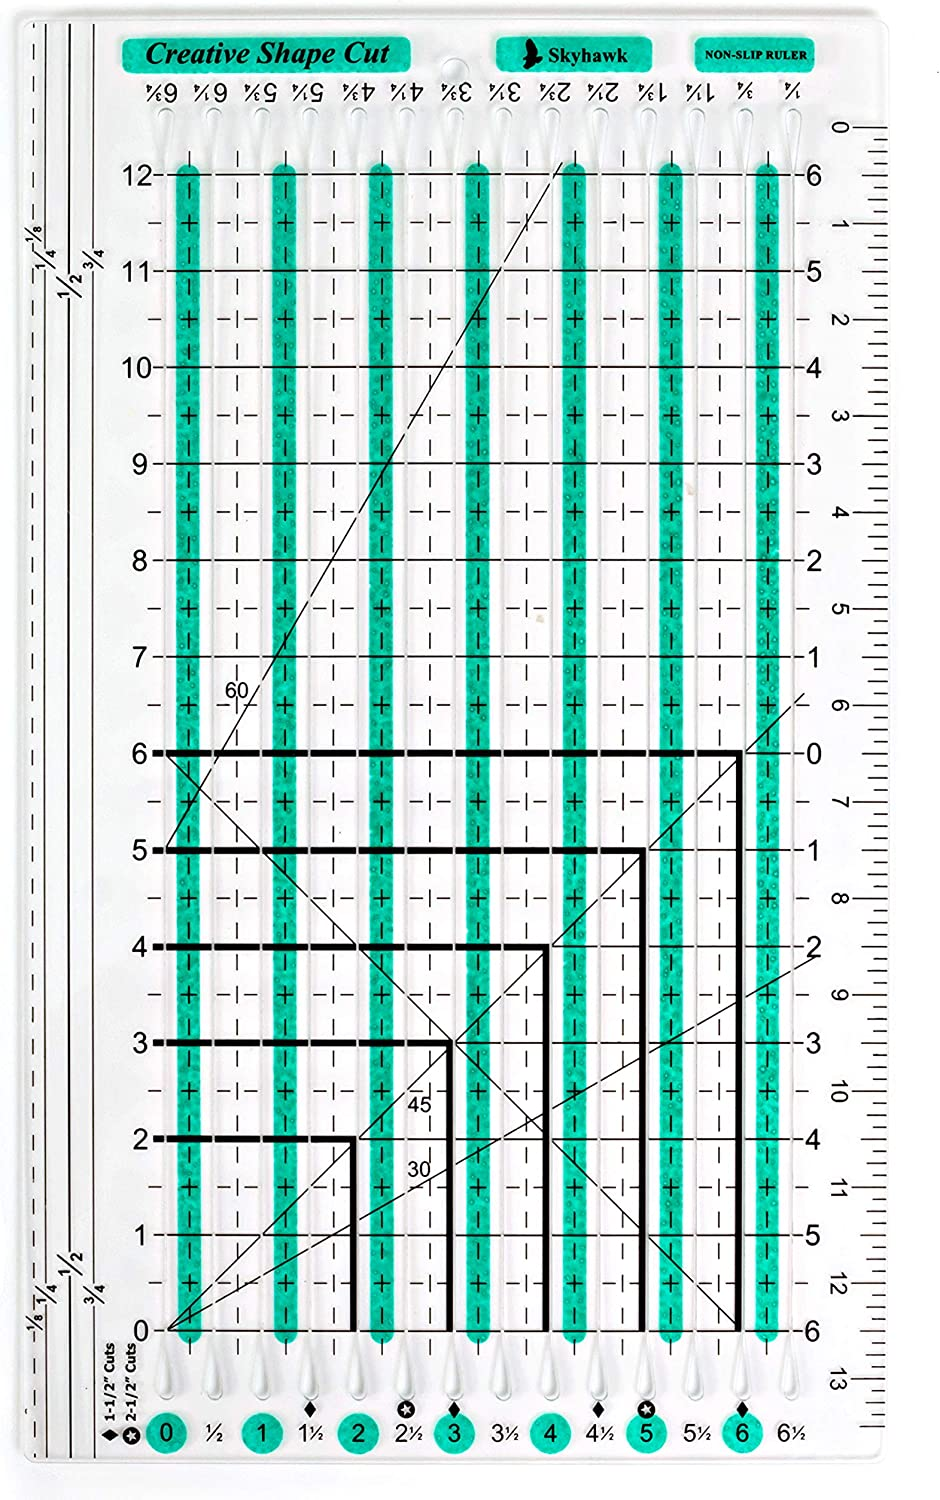 "Skyhawk Creative Shape Cut Non-Slip Slotted Cutting Ruler 6.5"" x 12"" Grid for Quilting and Sewing"